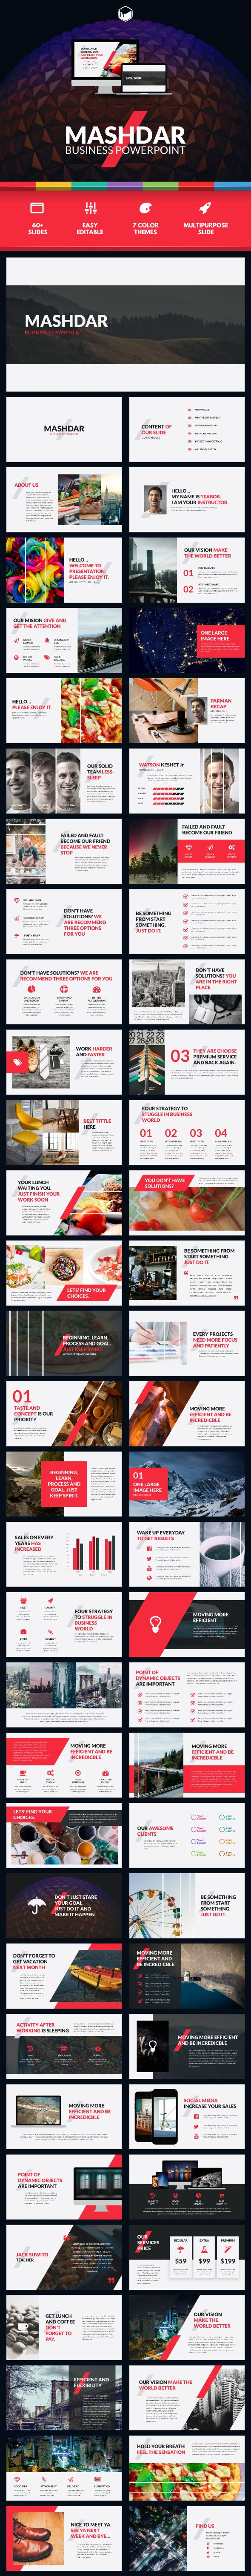 Mashdar - Business PowerPoint - Business #PowerPoint #Templates Download here: https://graphicriver.net/item/mashdar-business-powerpoint/19455477?ref=alena994